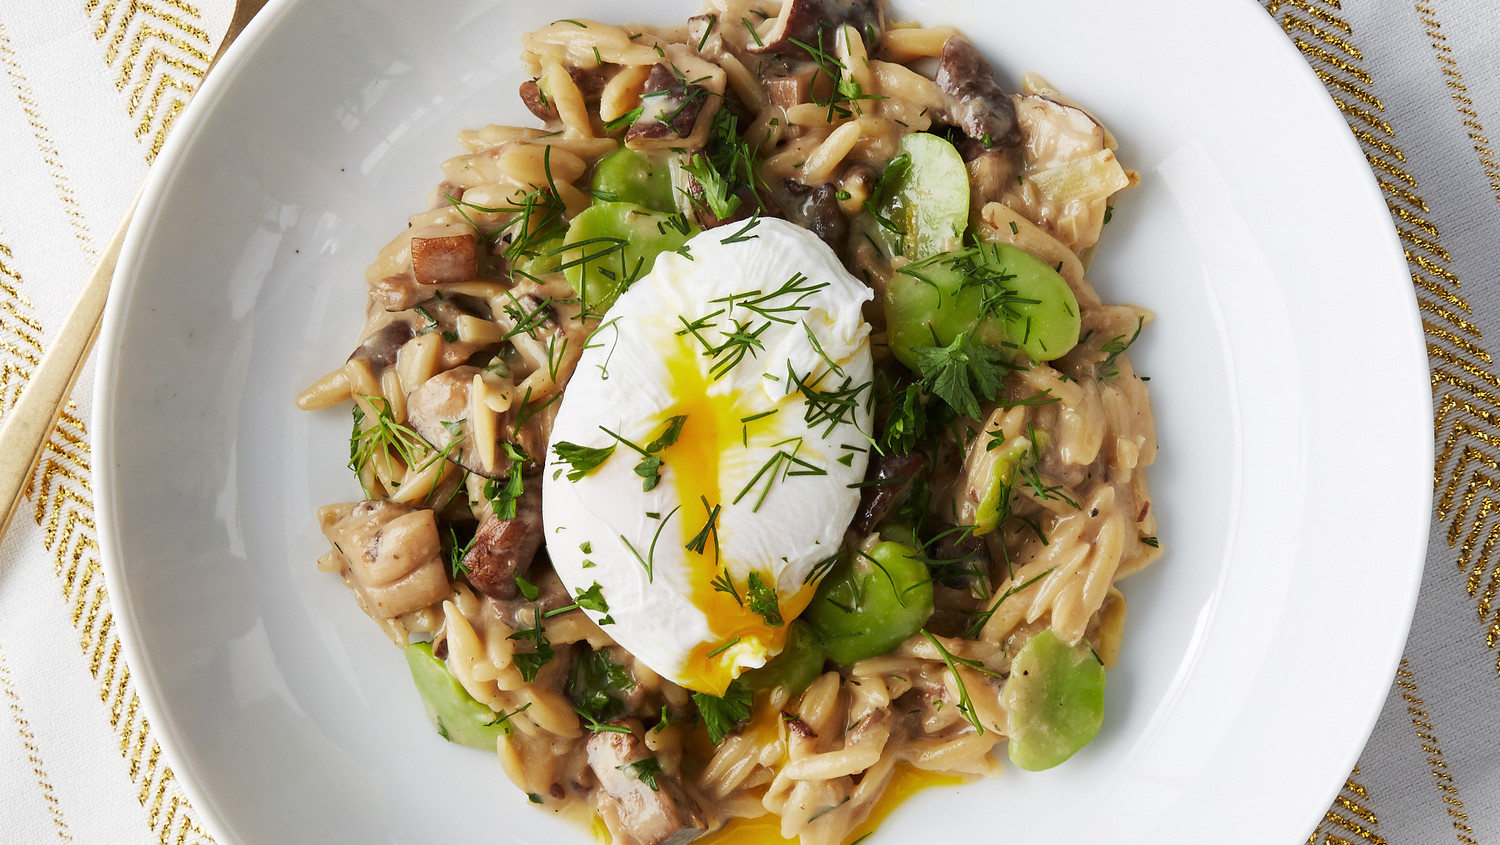 Orzo Risotto with Wild Mushrooms